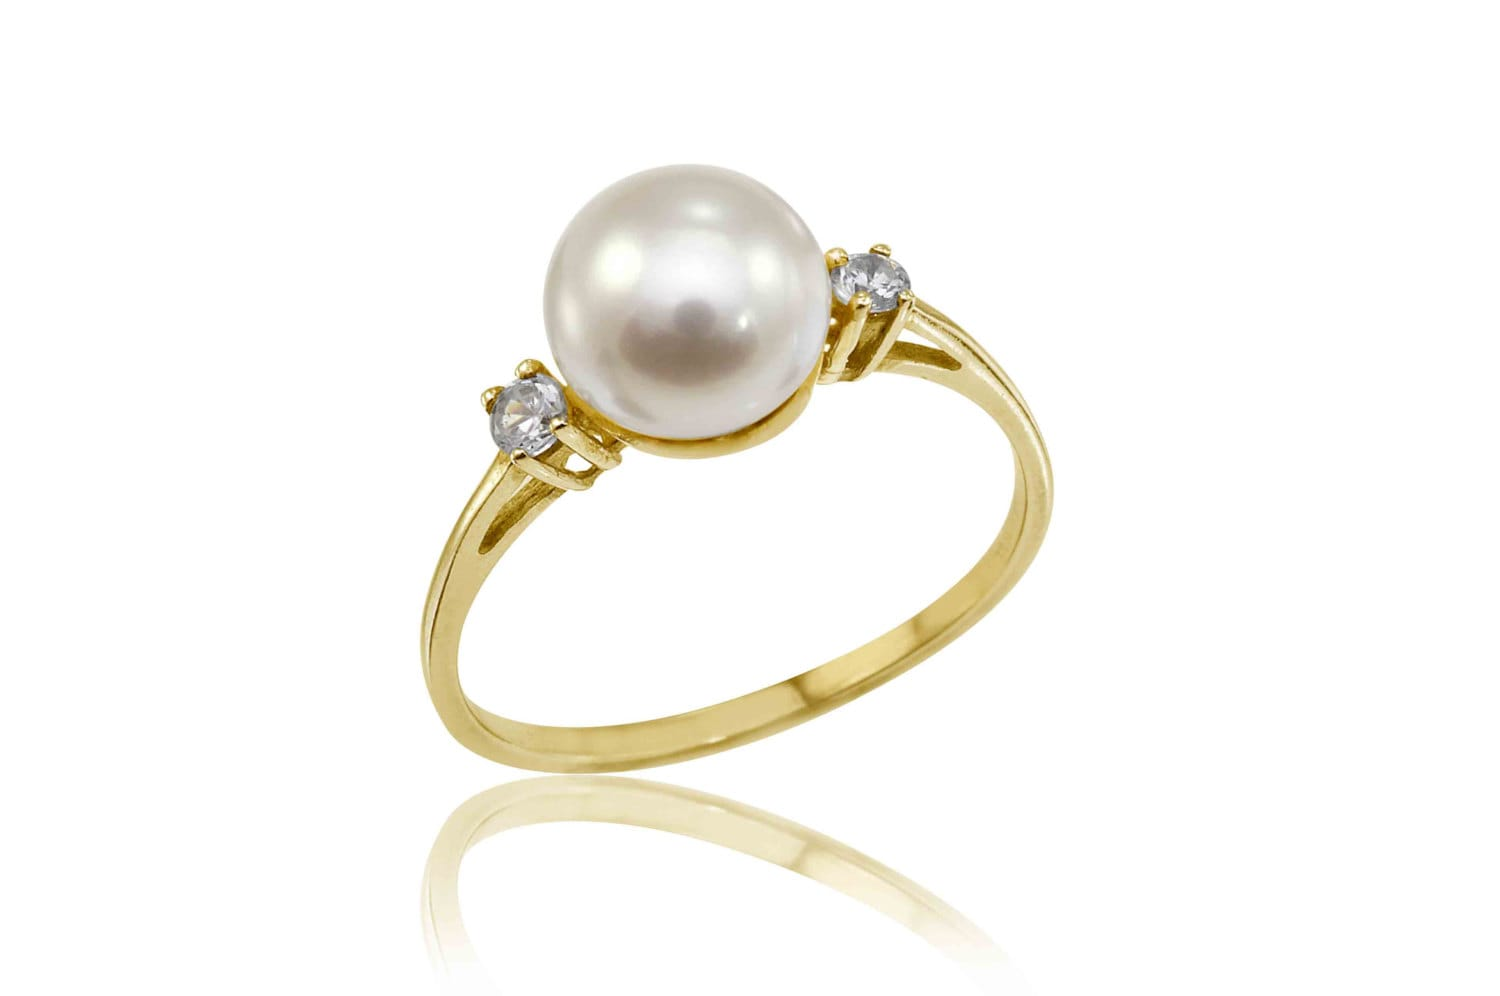 14k pearl ring pearl engagement ring dainty pearl ring june for Pearl engagement ring with wedding band